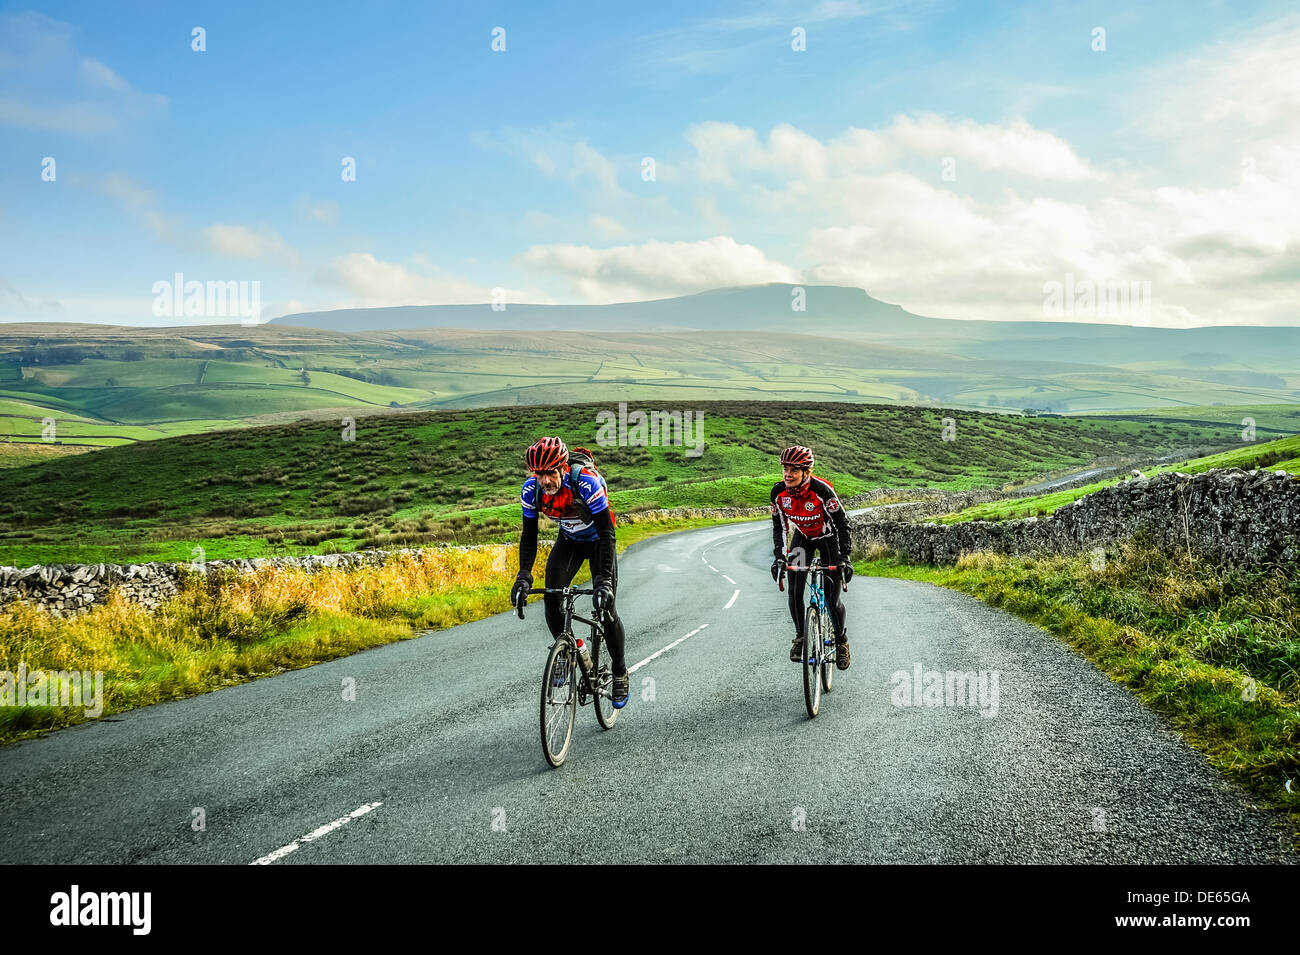 Cyclists in Ribblesdale in the Yorkshire Dales National Park with Pen-y-Ghent behind - Stock Image